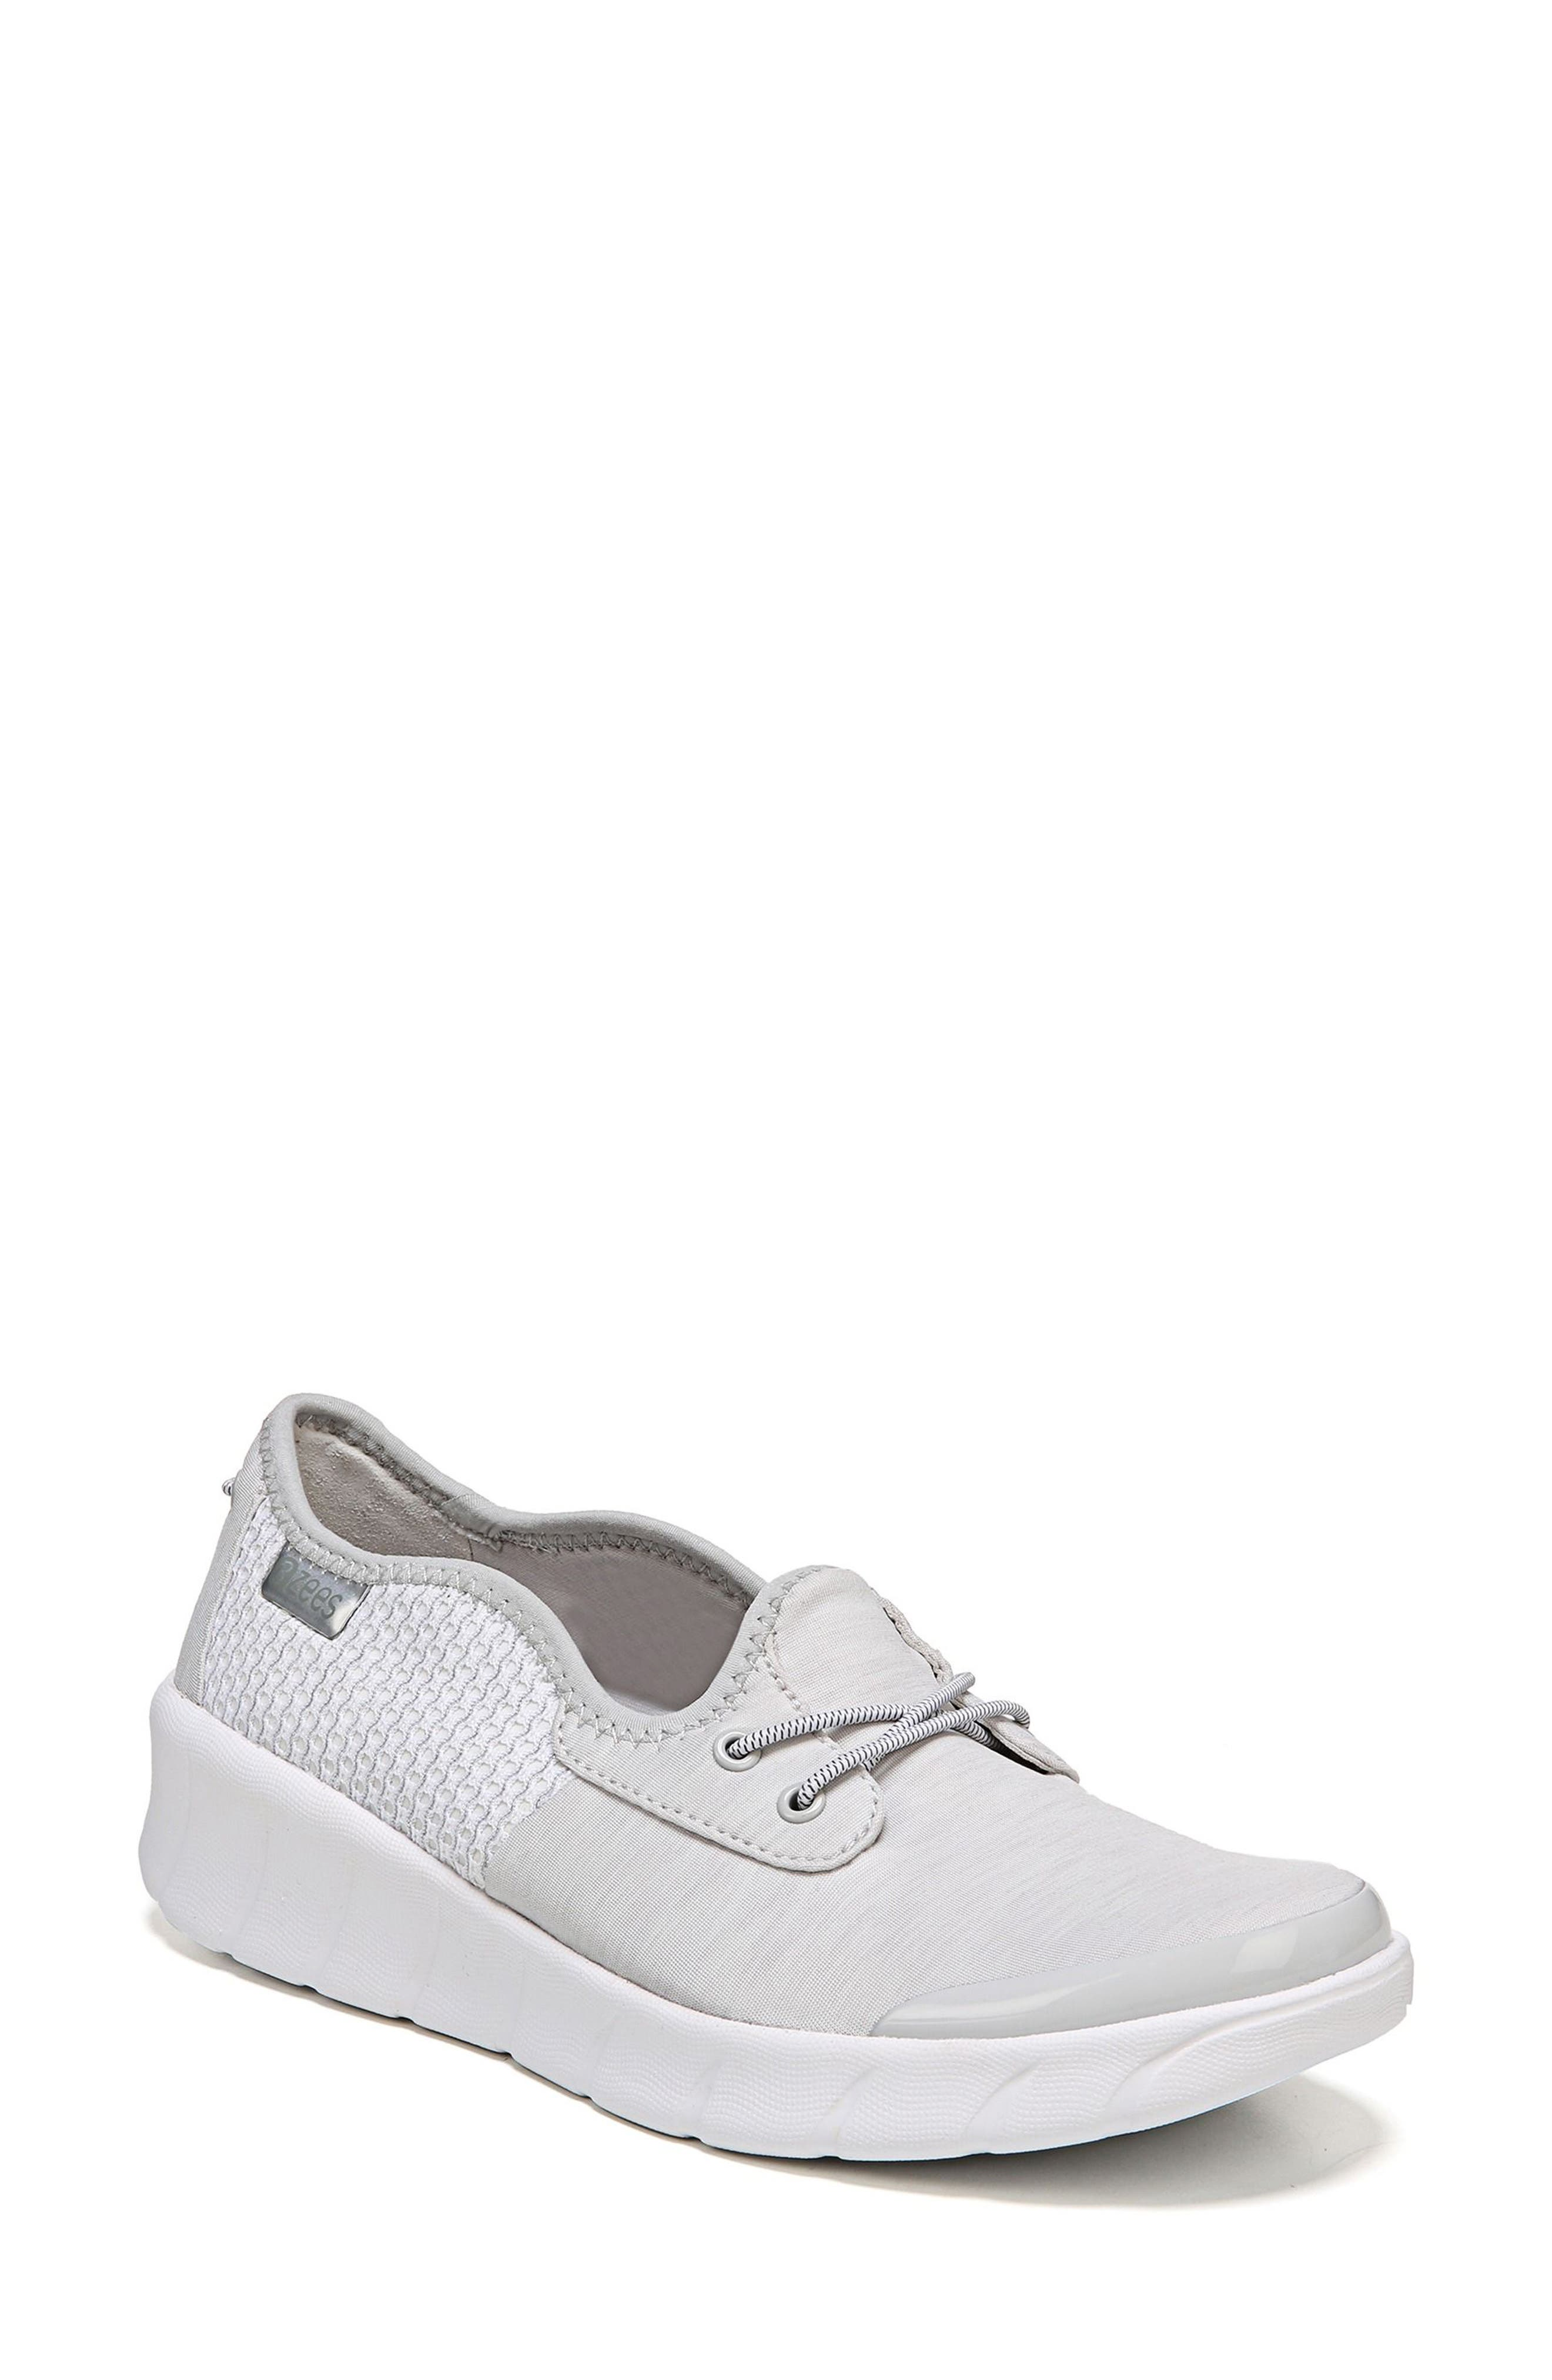 Oz Slip-On Sneaker,                             Main thumbnail 1, color,                             Grey Fabric